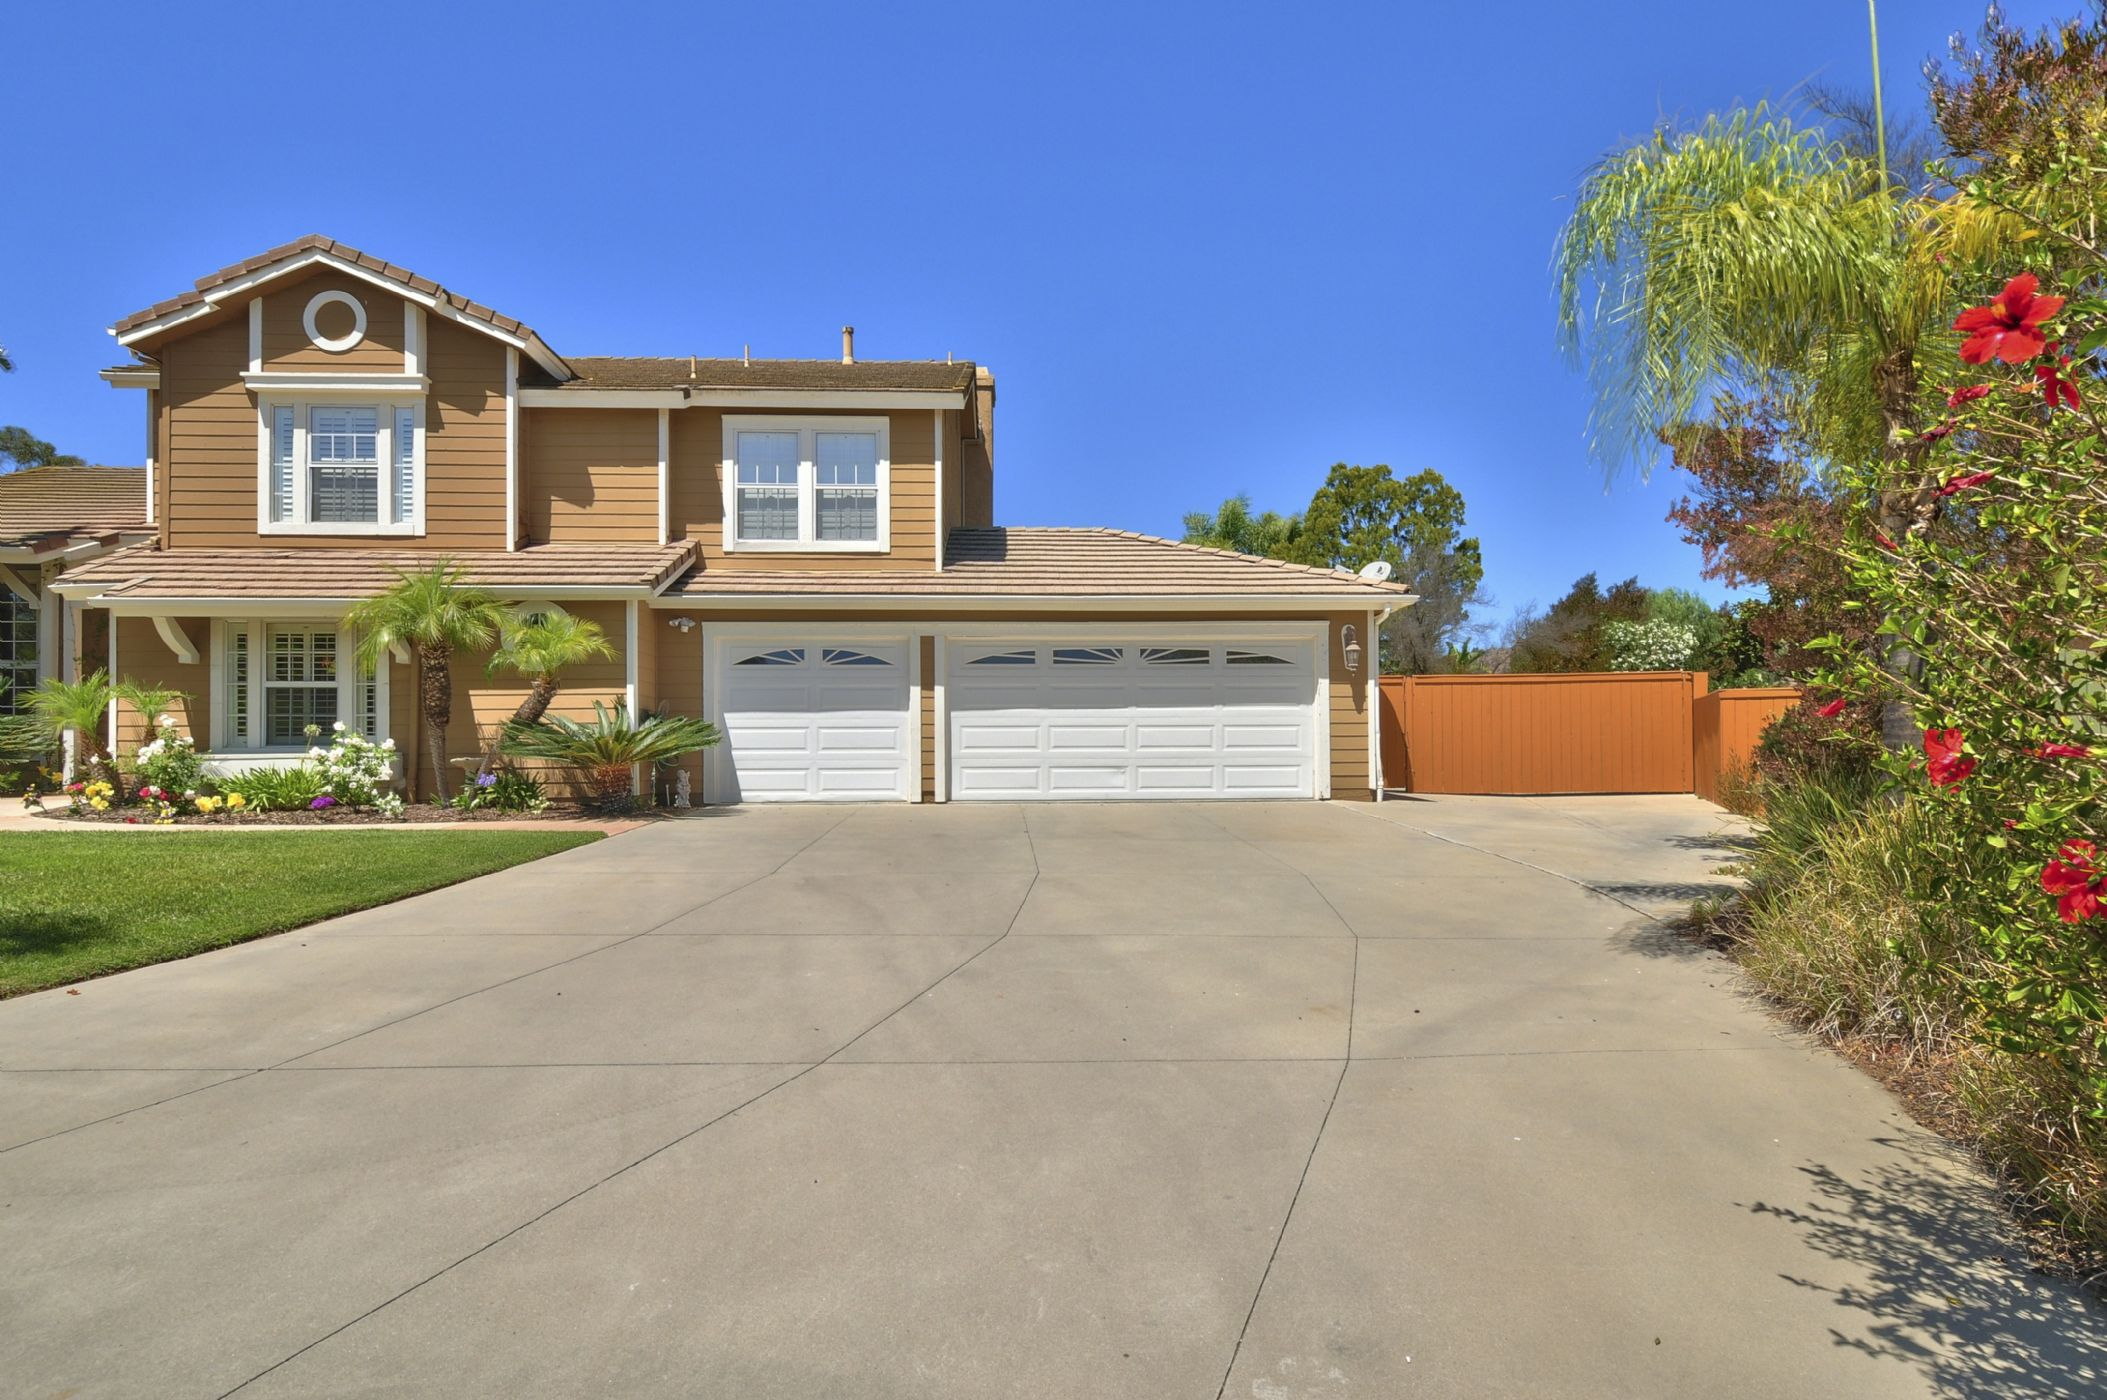 Santa Rosa Valley Home, CA Real Estate Listing